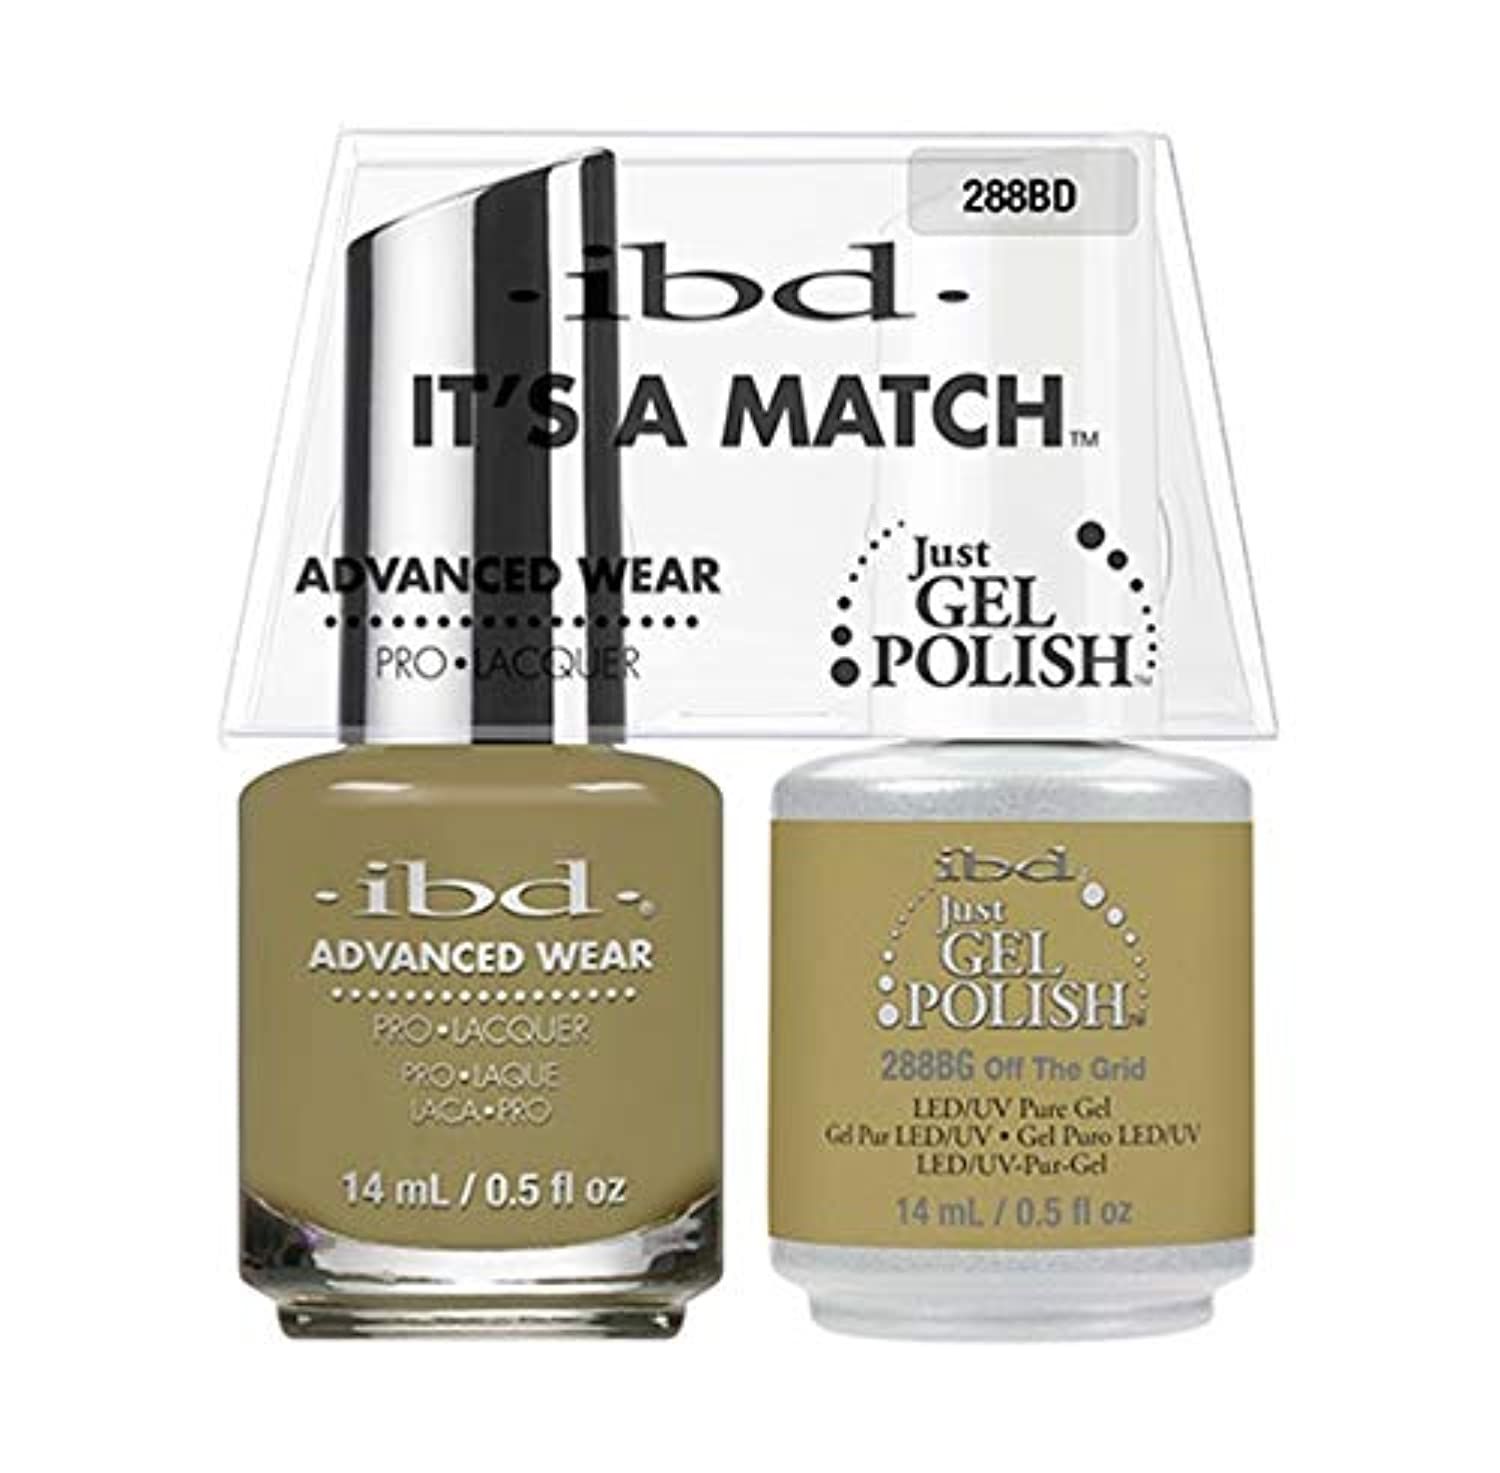 ibd - It's A Match - Duo Pack - Serengeti Soul Collection - Off The Grid - 14ml / 0.5oz each